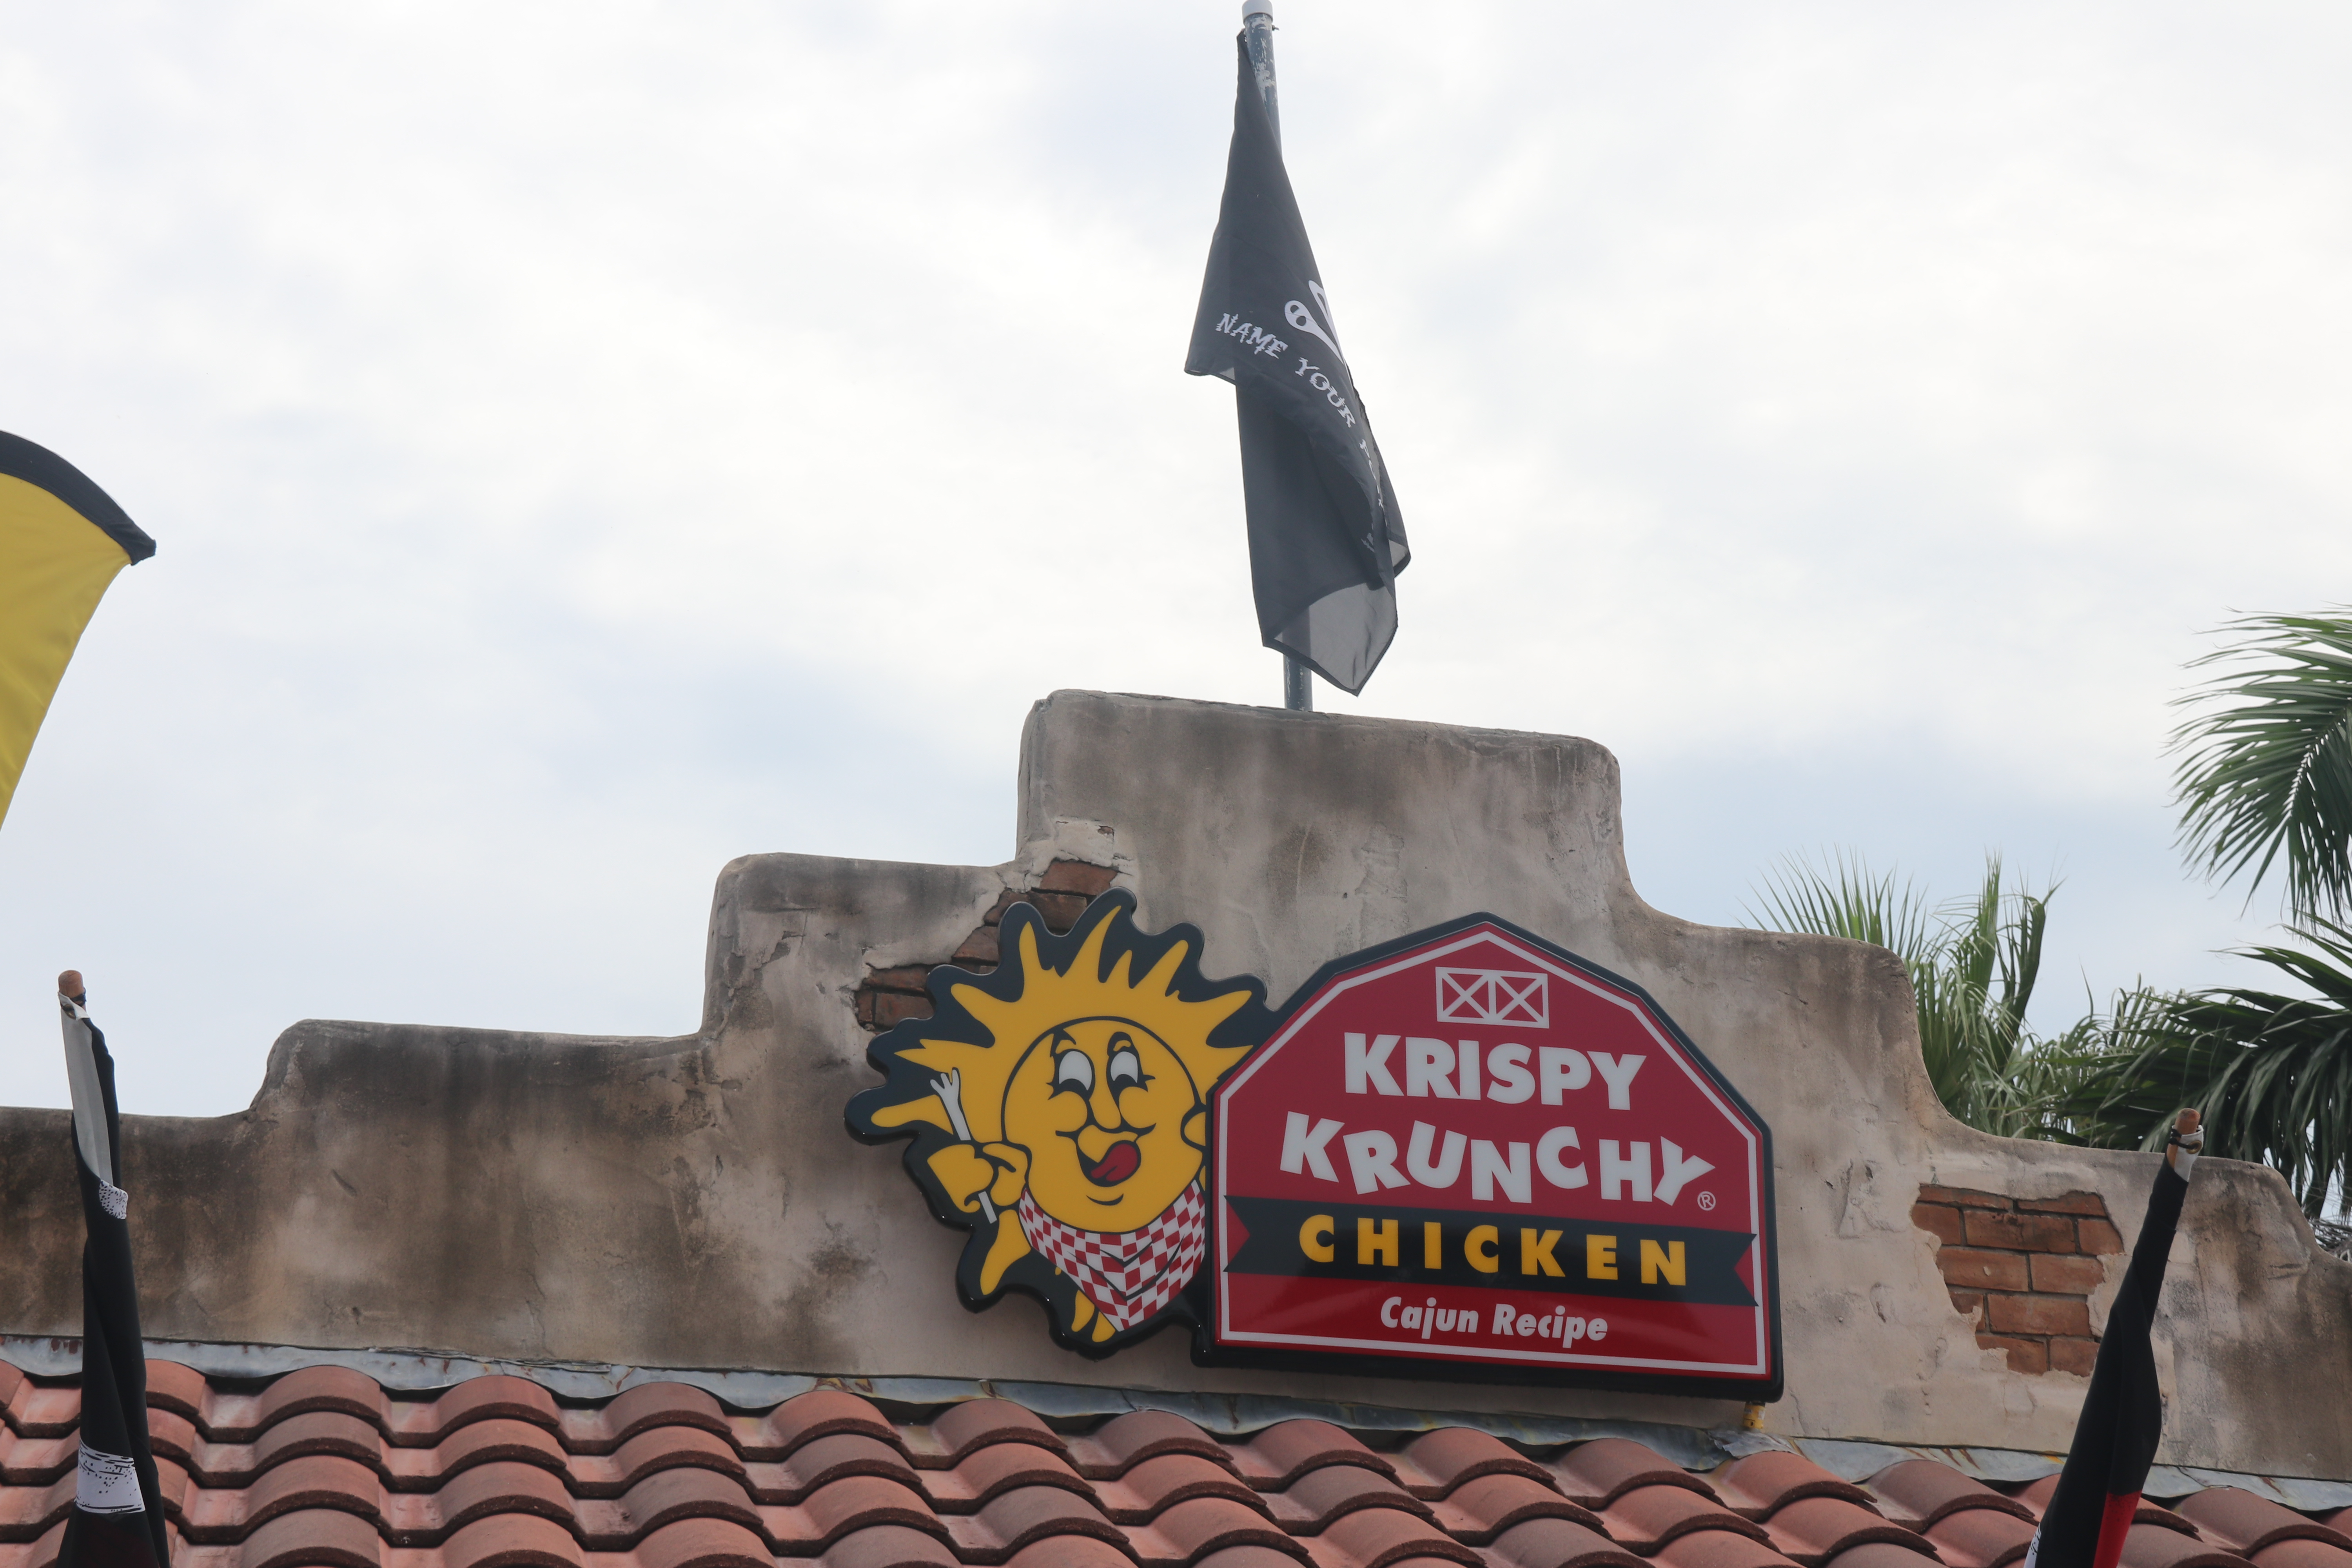 Capt. Jack's Krispy Krunch Chicken